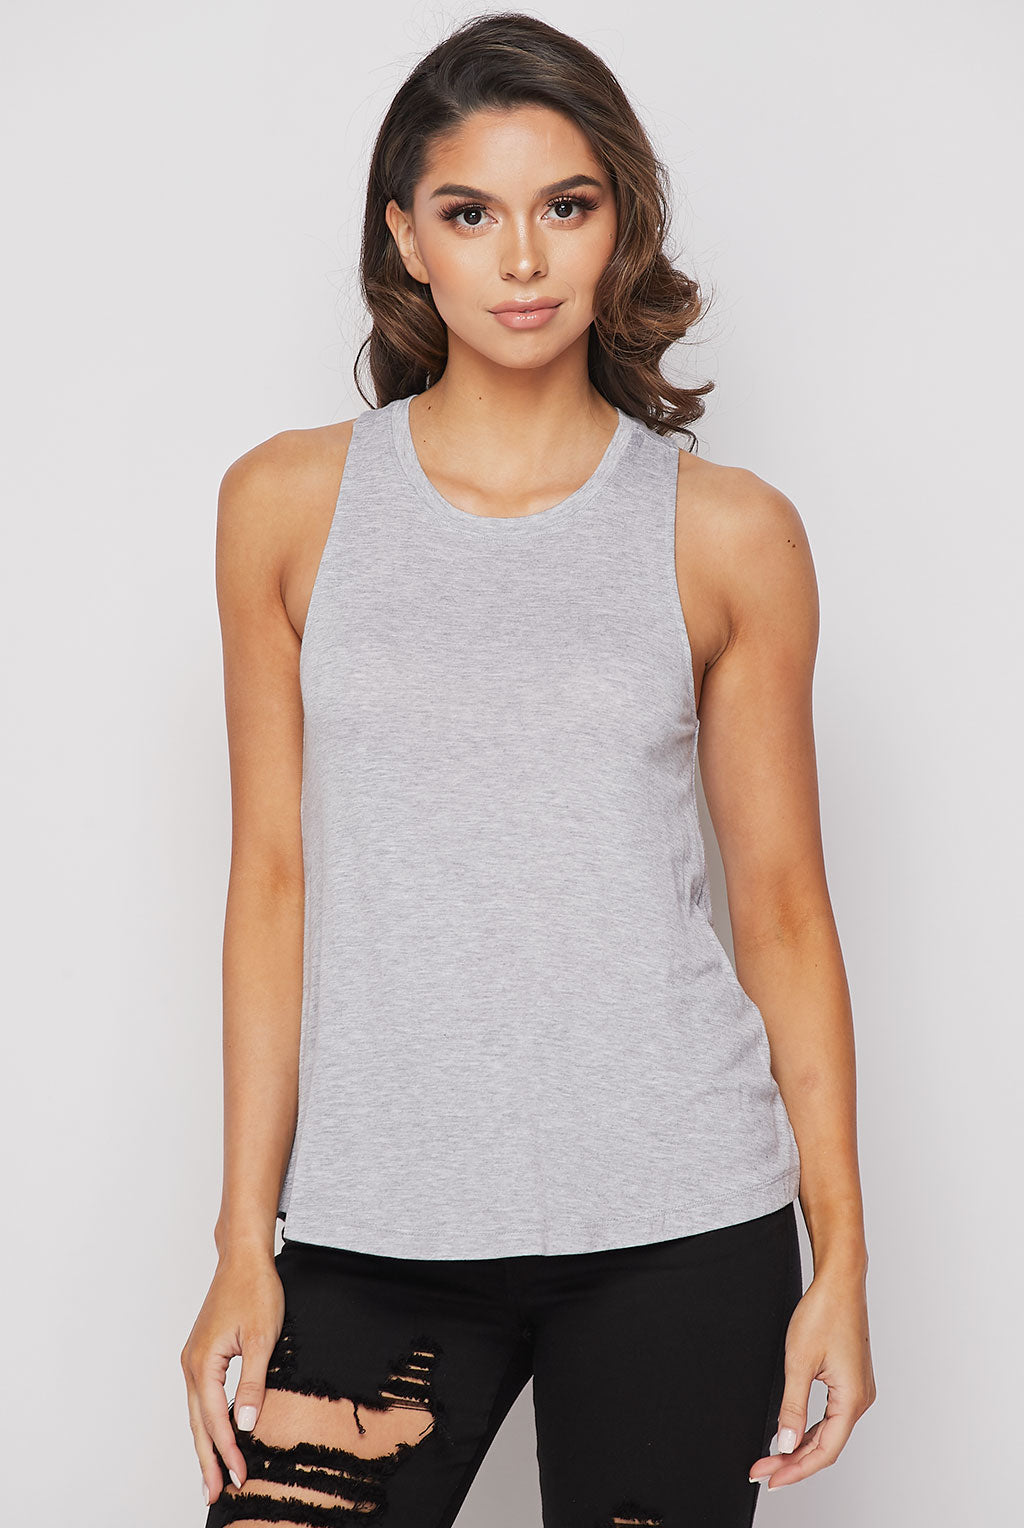 Teeze Me | Sleeveless Crew Neck Loose Fit Tank Top | Heather Grey